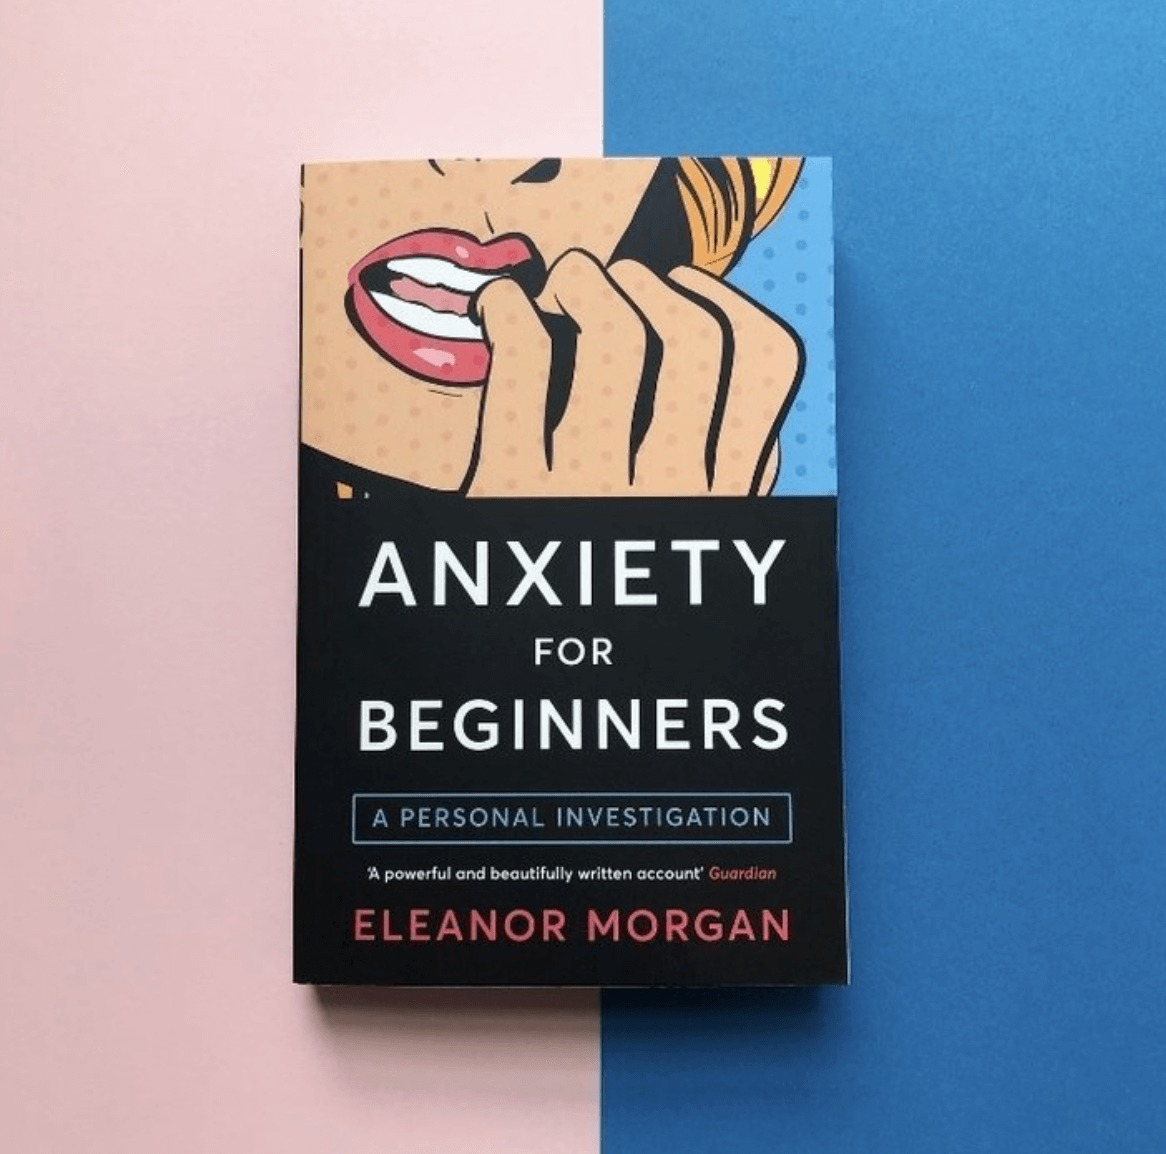 Anxiety for Beginners by Eleanor Morgan.